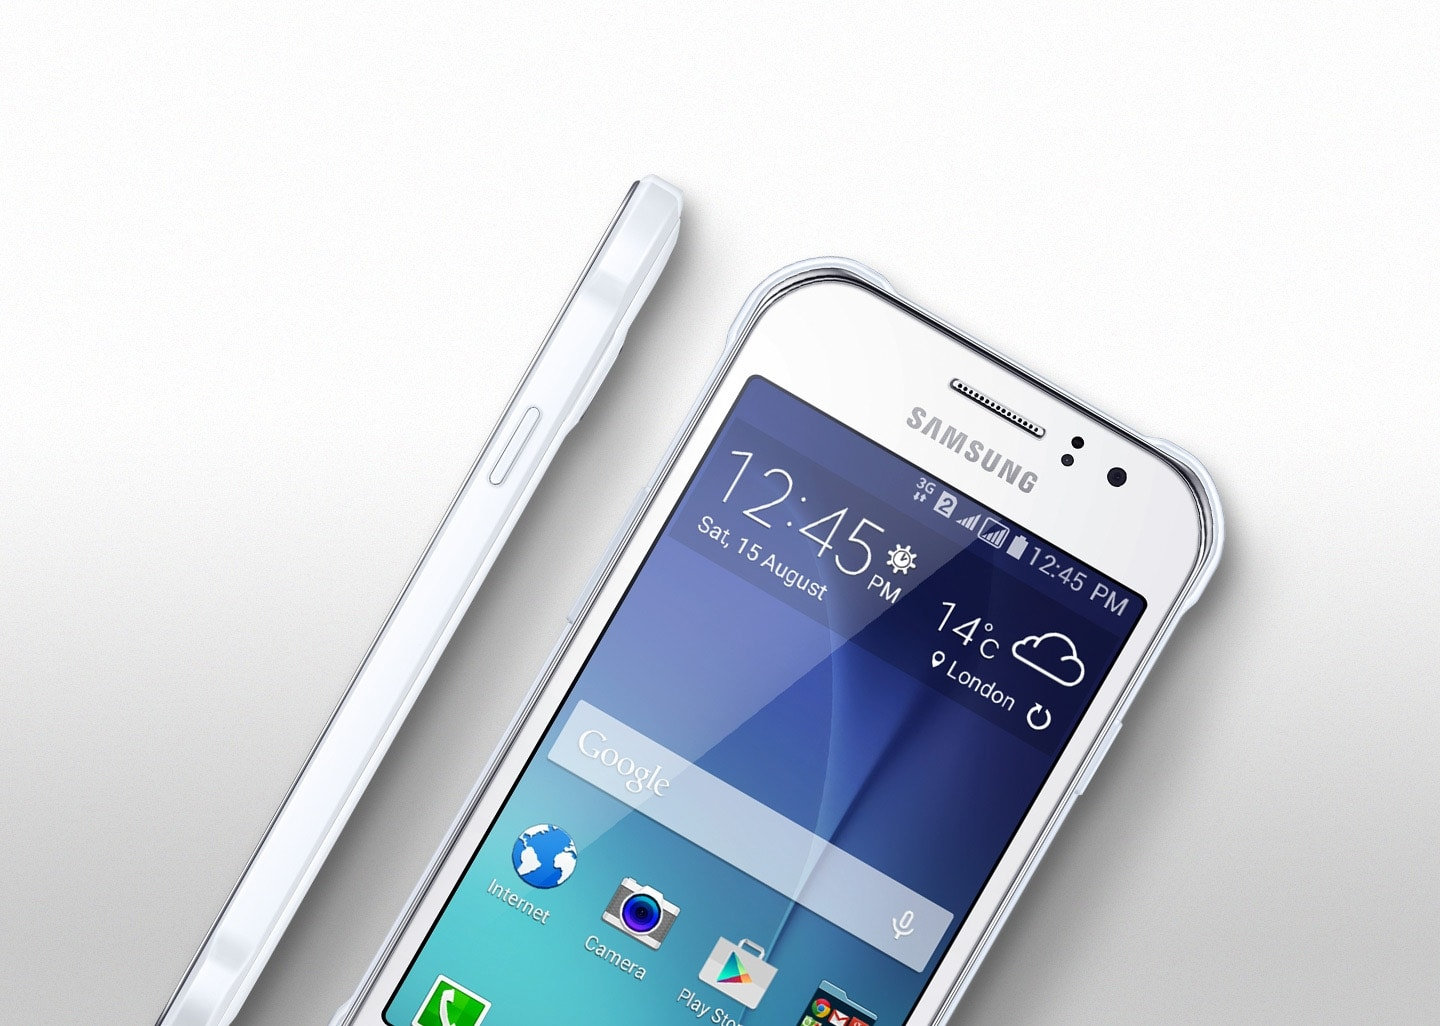 Samsung J1 Ace In Unique Design Samsung Galaxy J1 Ace Neo 808760 Hd Wallpaper Backgrounds Download